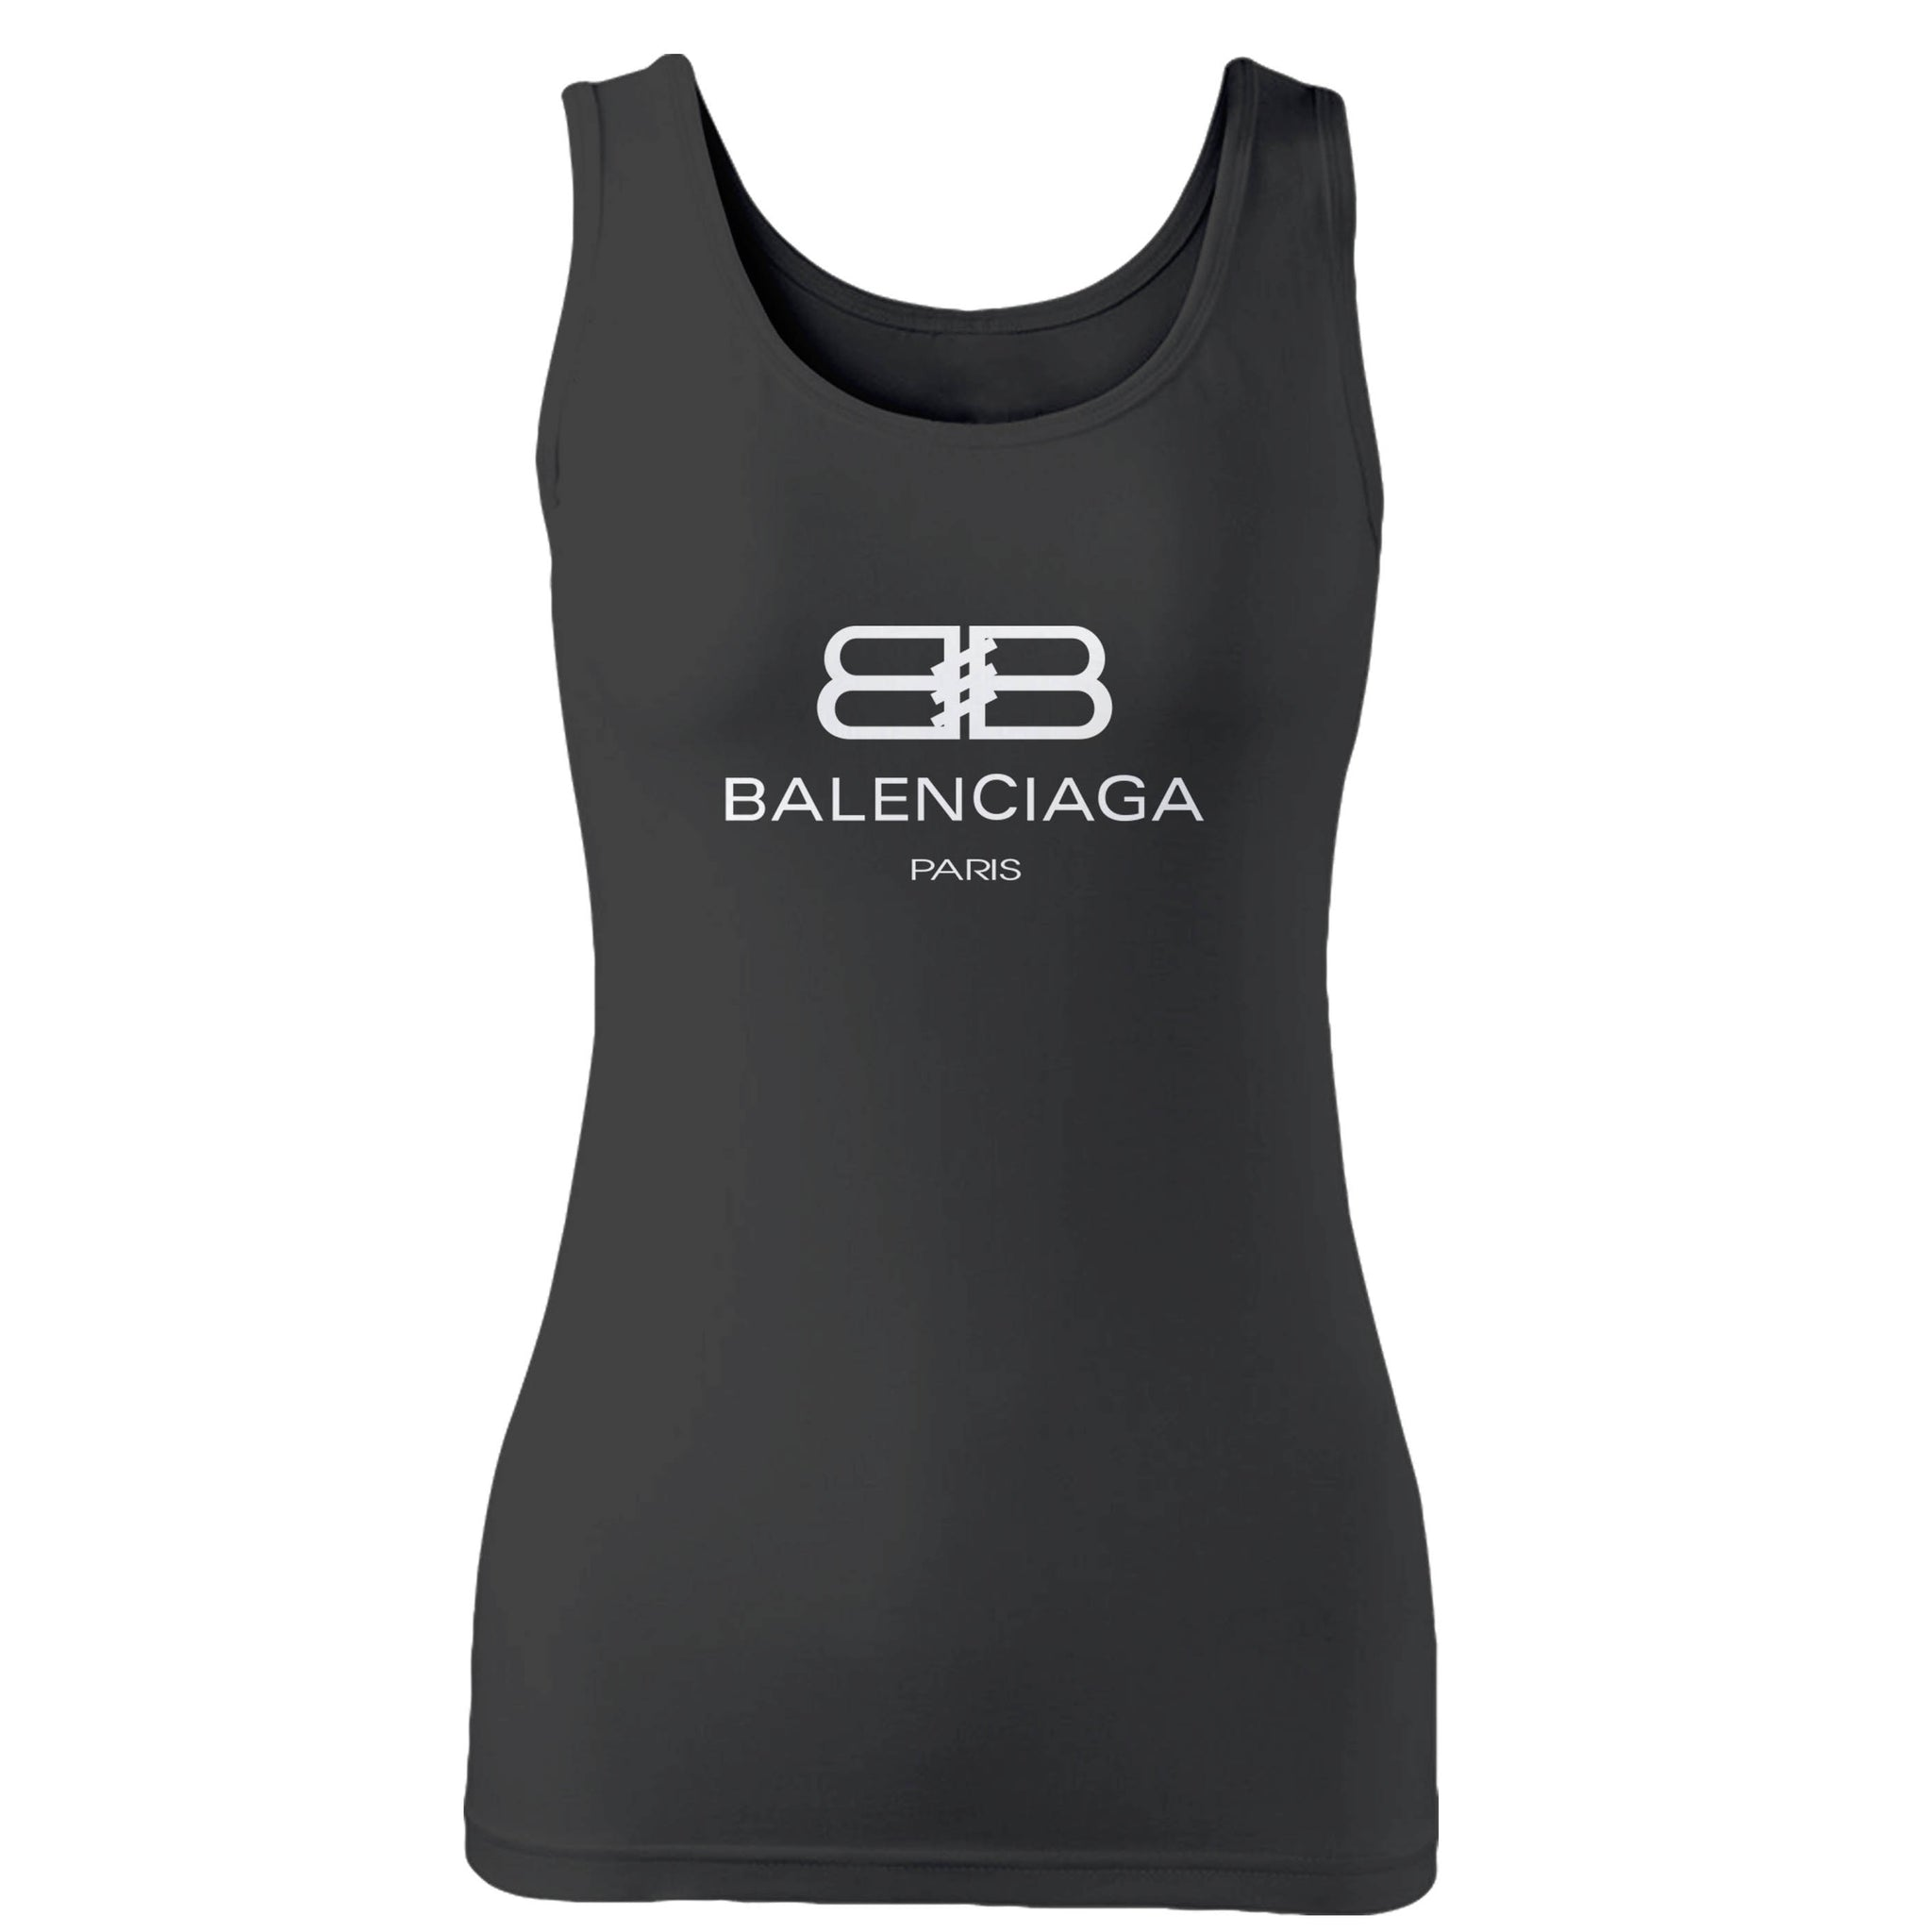 Bb Balenciaga Woman's Tank Top